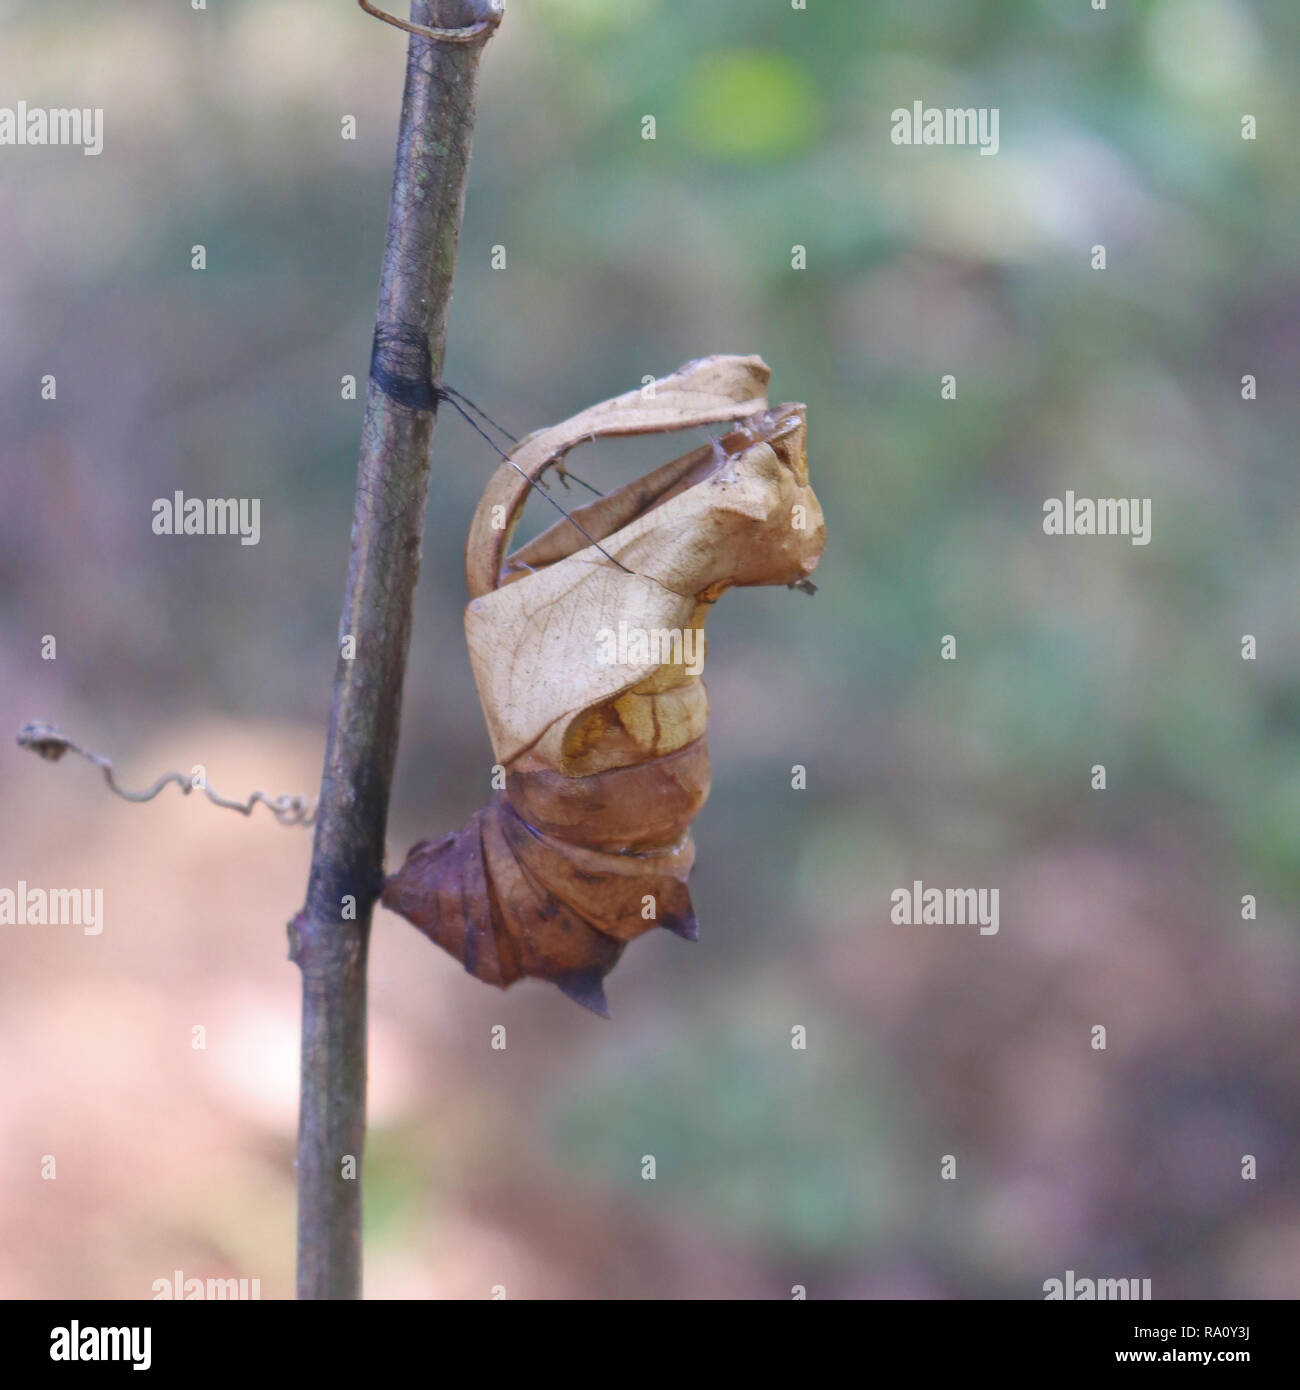 Empty pupal case of Southern Birdwing butterfly - Stock Image